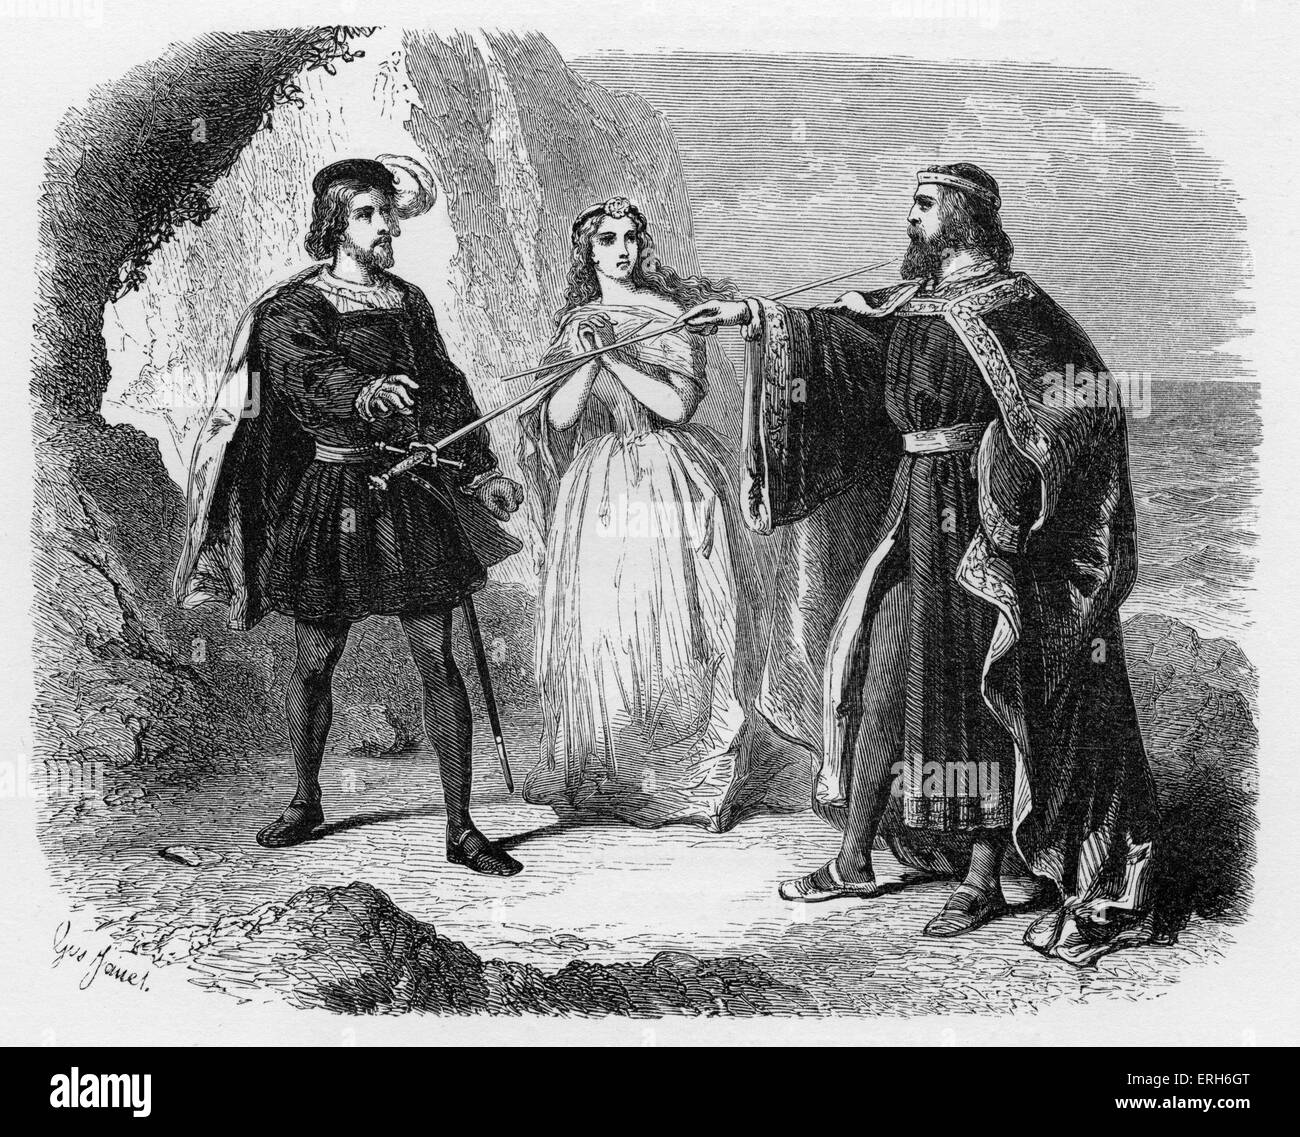 character analysis judith shakespeare Othello (vol 68) - essay william shakespeare character as it does on understanding the characters of iago and othello shakespeare depicted judith buchanan.